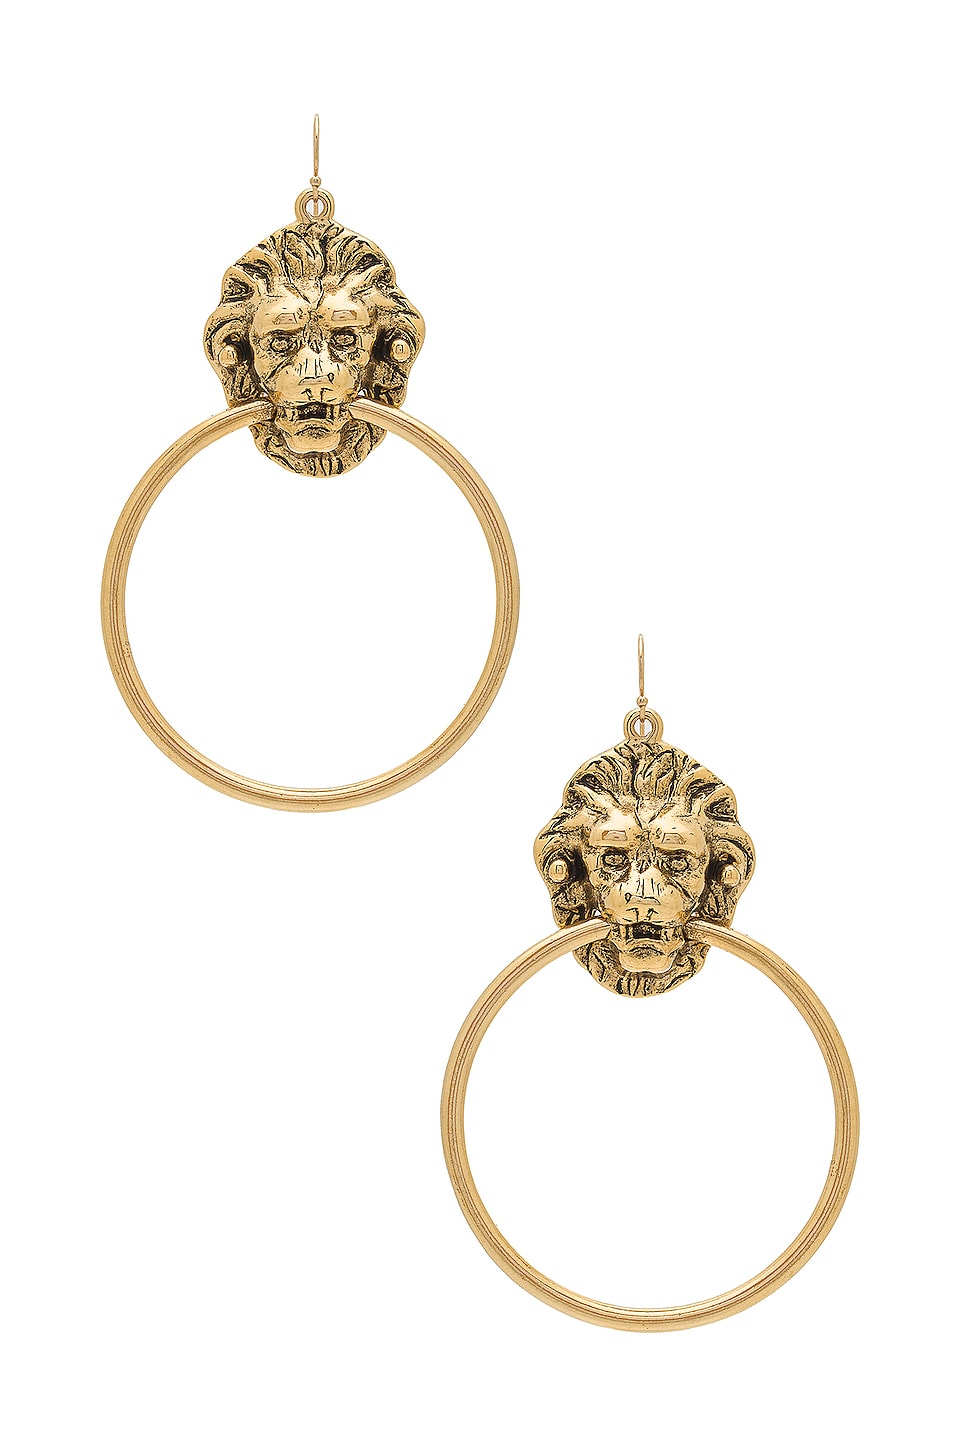 Vanessa Mooney Vandal Earrings in Gold